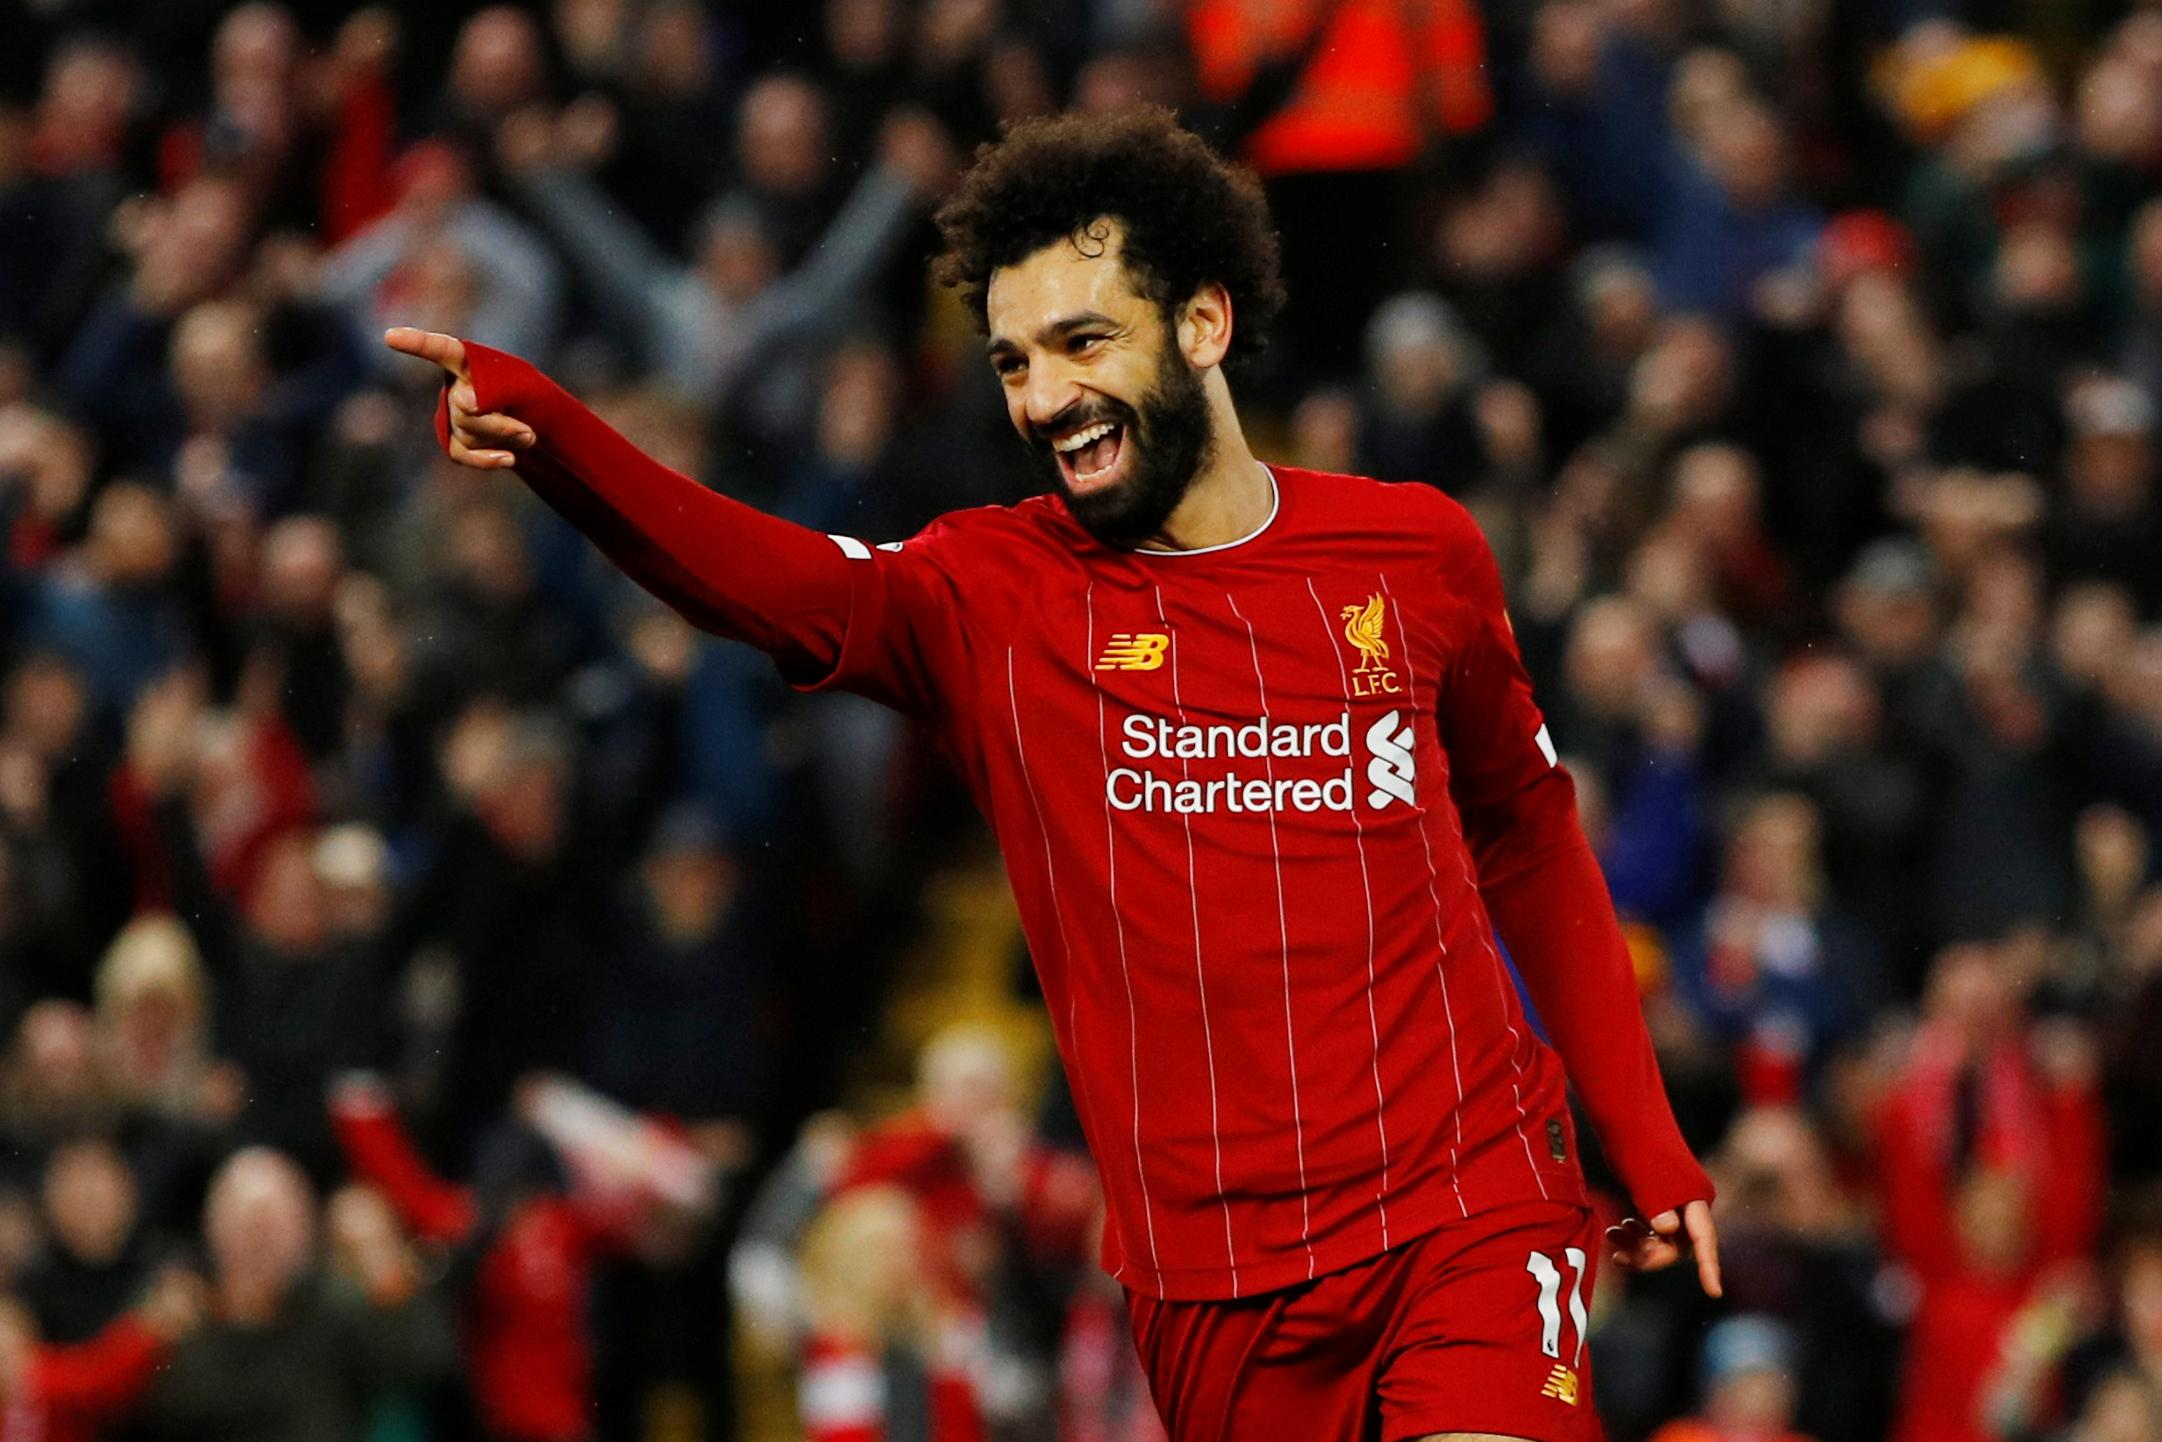 Mohamed Salah Takes Insolent Shot At Sadio Mane